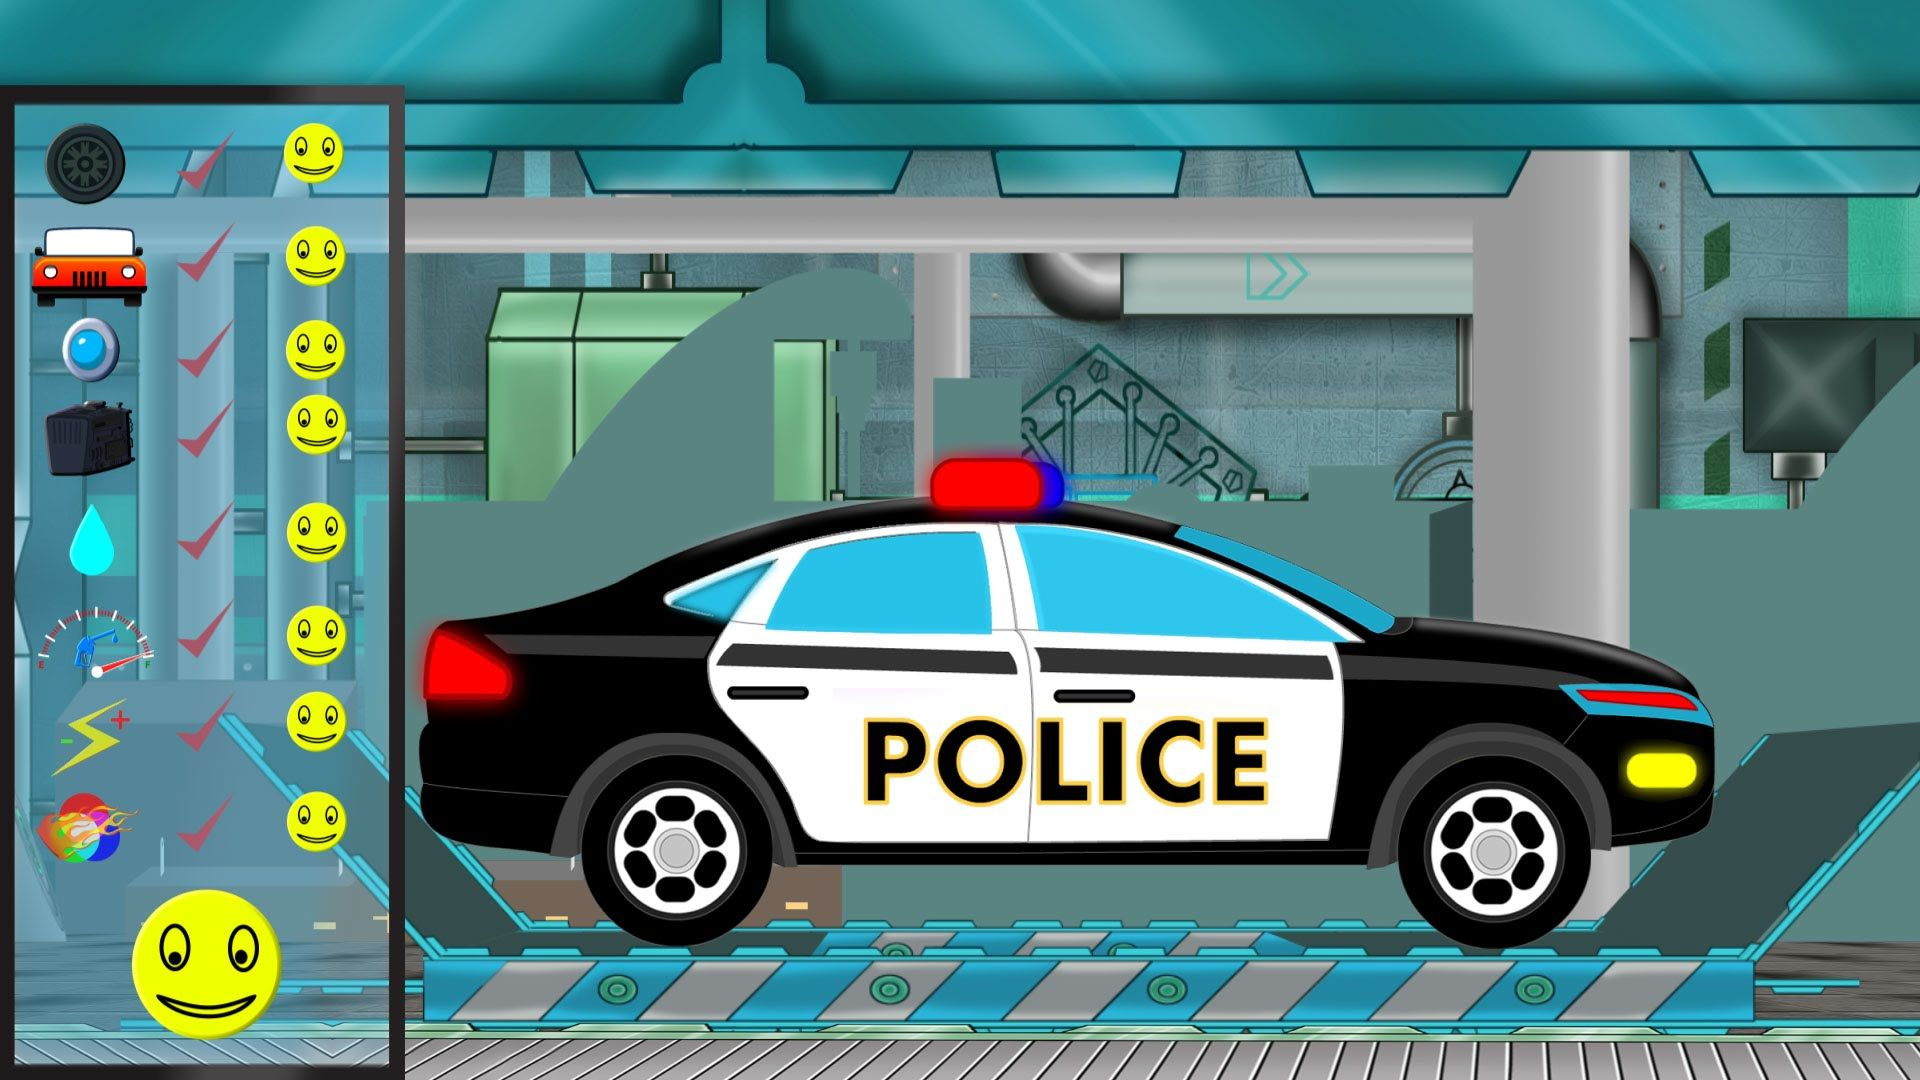 Police Car | Police Car Repair | Car Garage | Car Repair | Ideas for ...